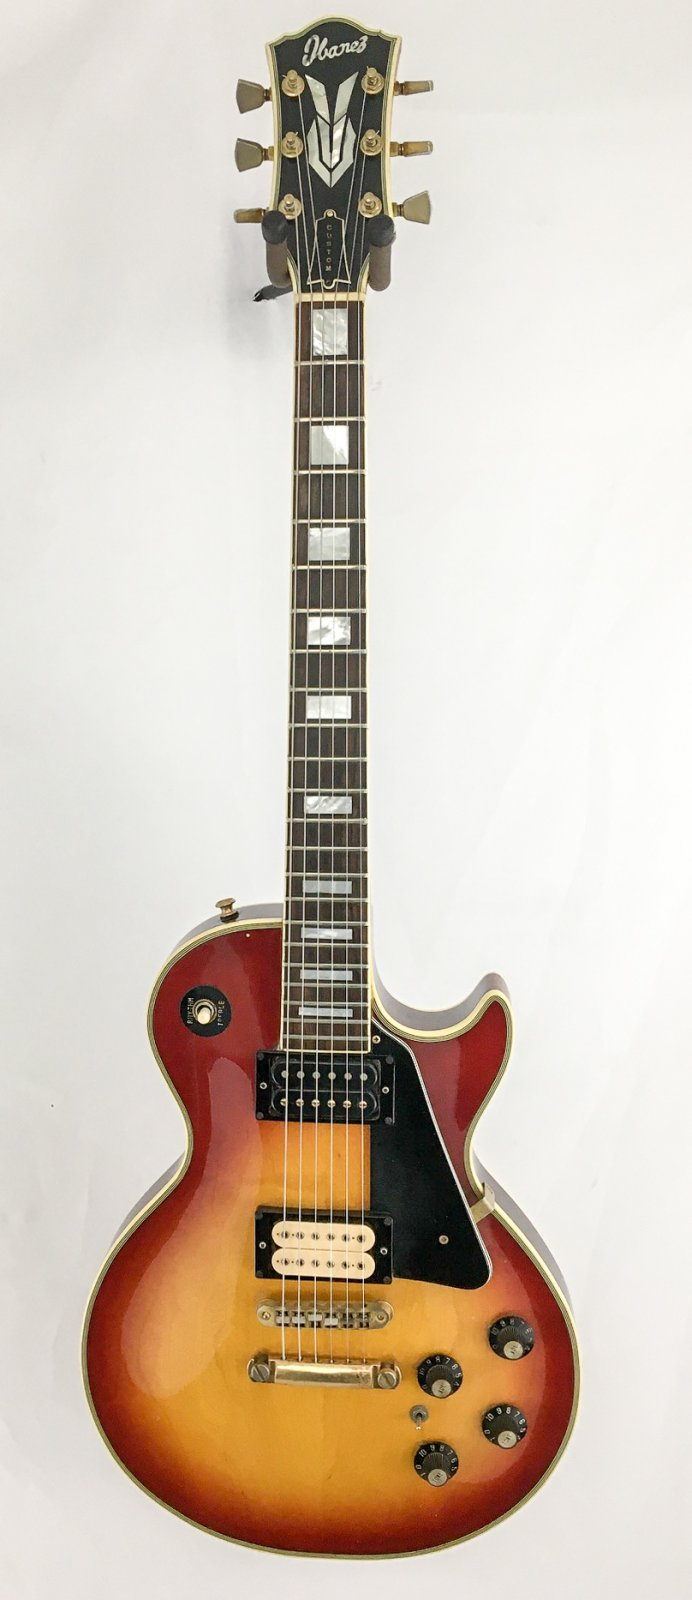 1977 Ibanez 2650 set neck lawsuit-era LP